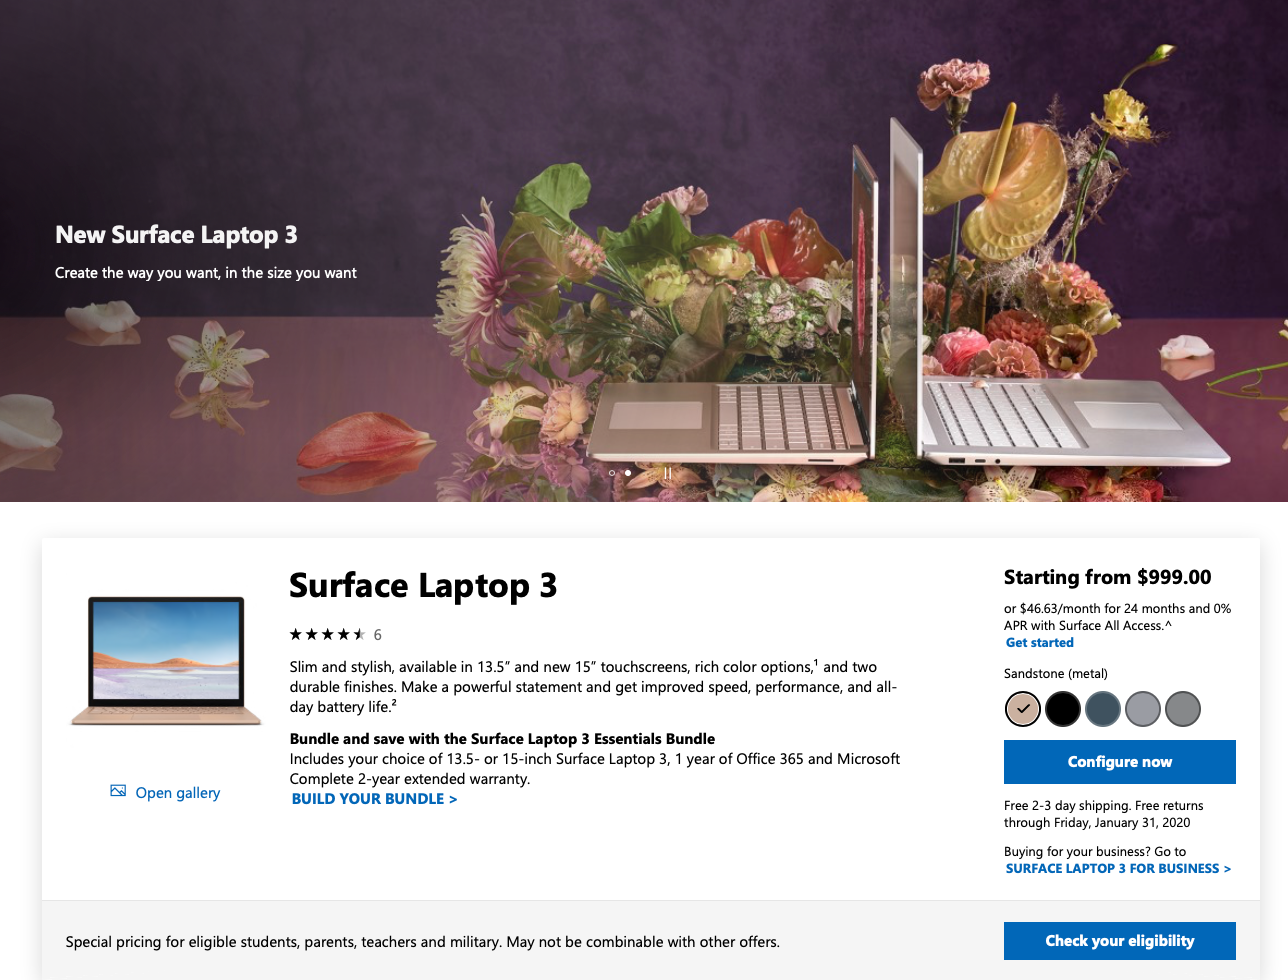 Microsoft includes everything-but-the-kitchen-sink on their Surface Laptop page, including shipping and financing details, customer reviews, and redundant labels that compete with one another.